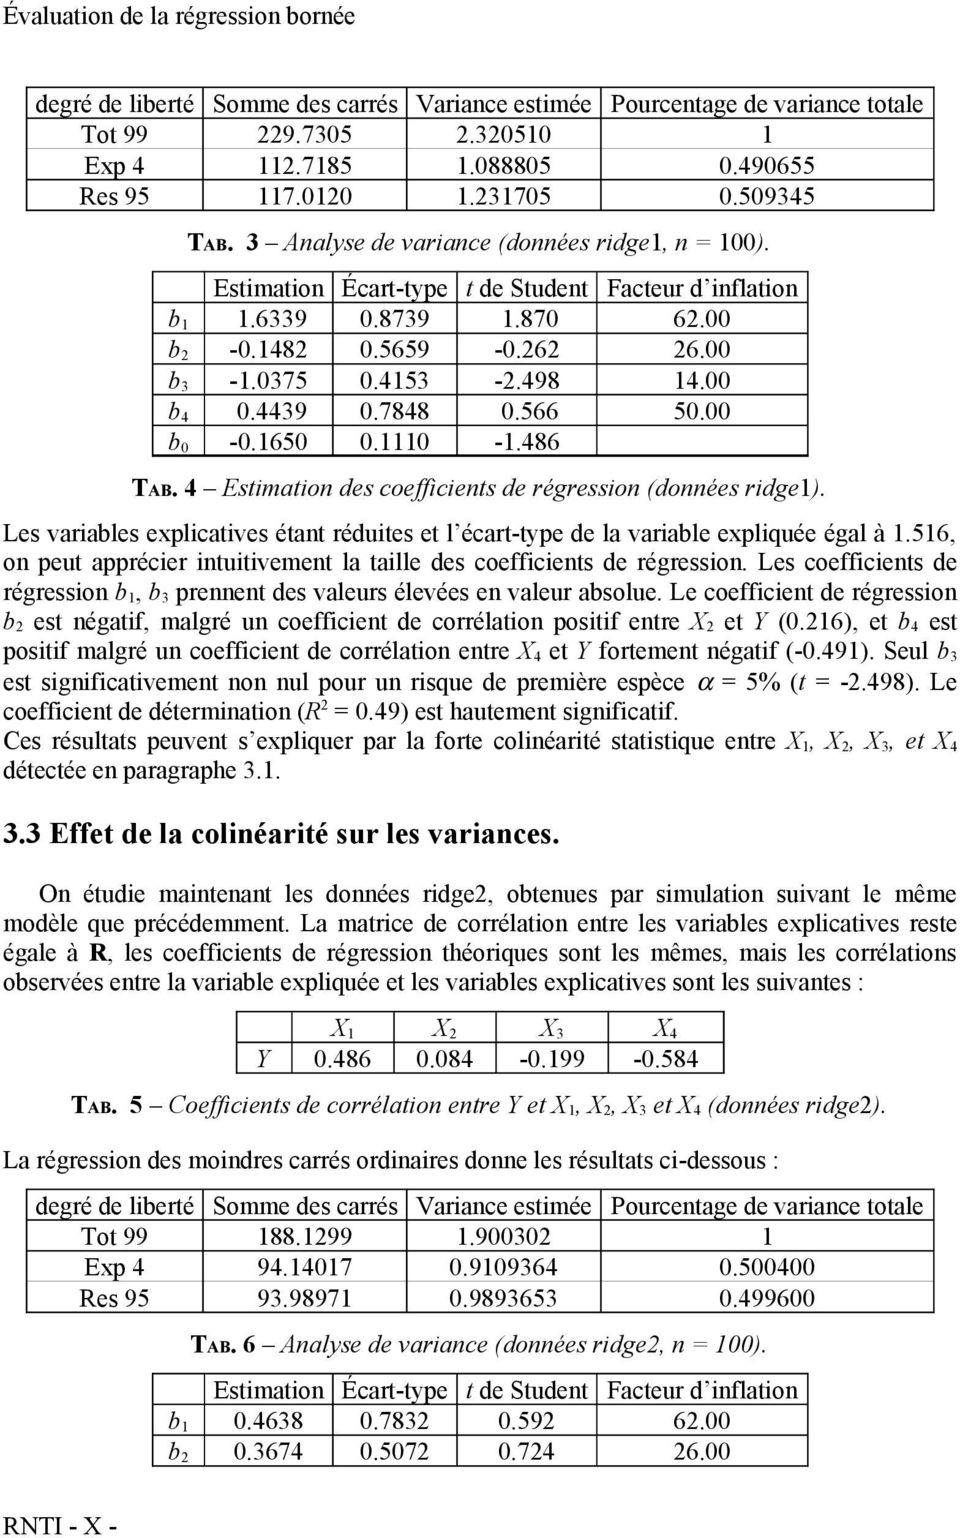 4439 0.7848 0.566 50.00 b 0-0.1650 0.1110-1.486 TAB. 4 Estimation des coefficients de régression (données ridge1).